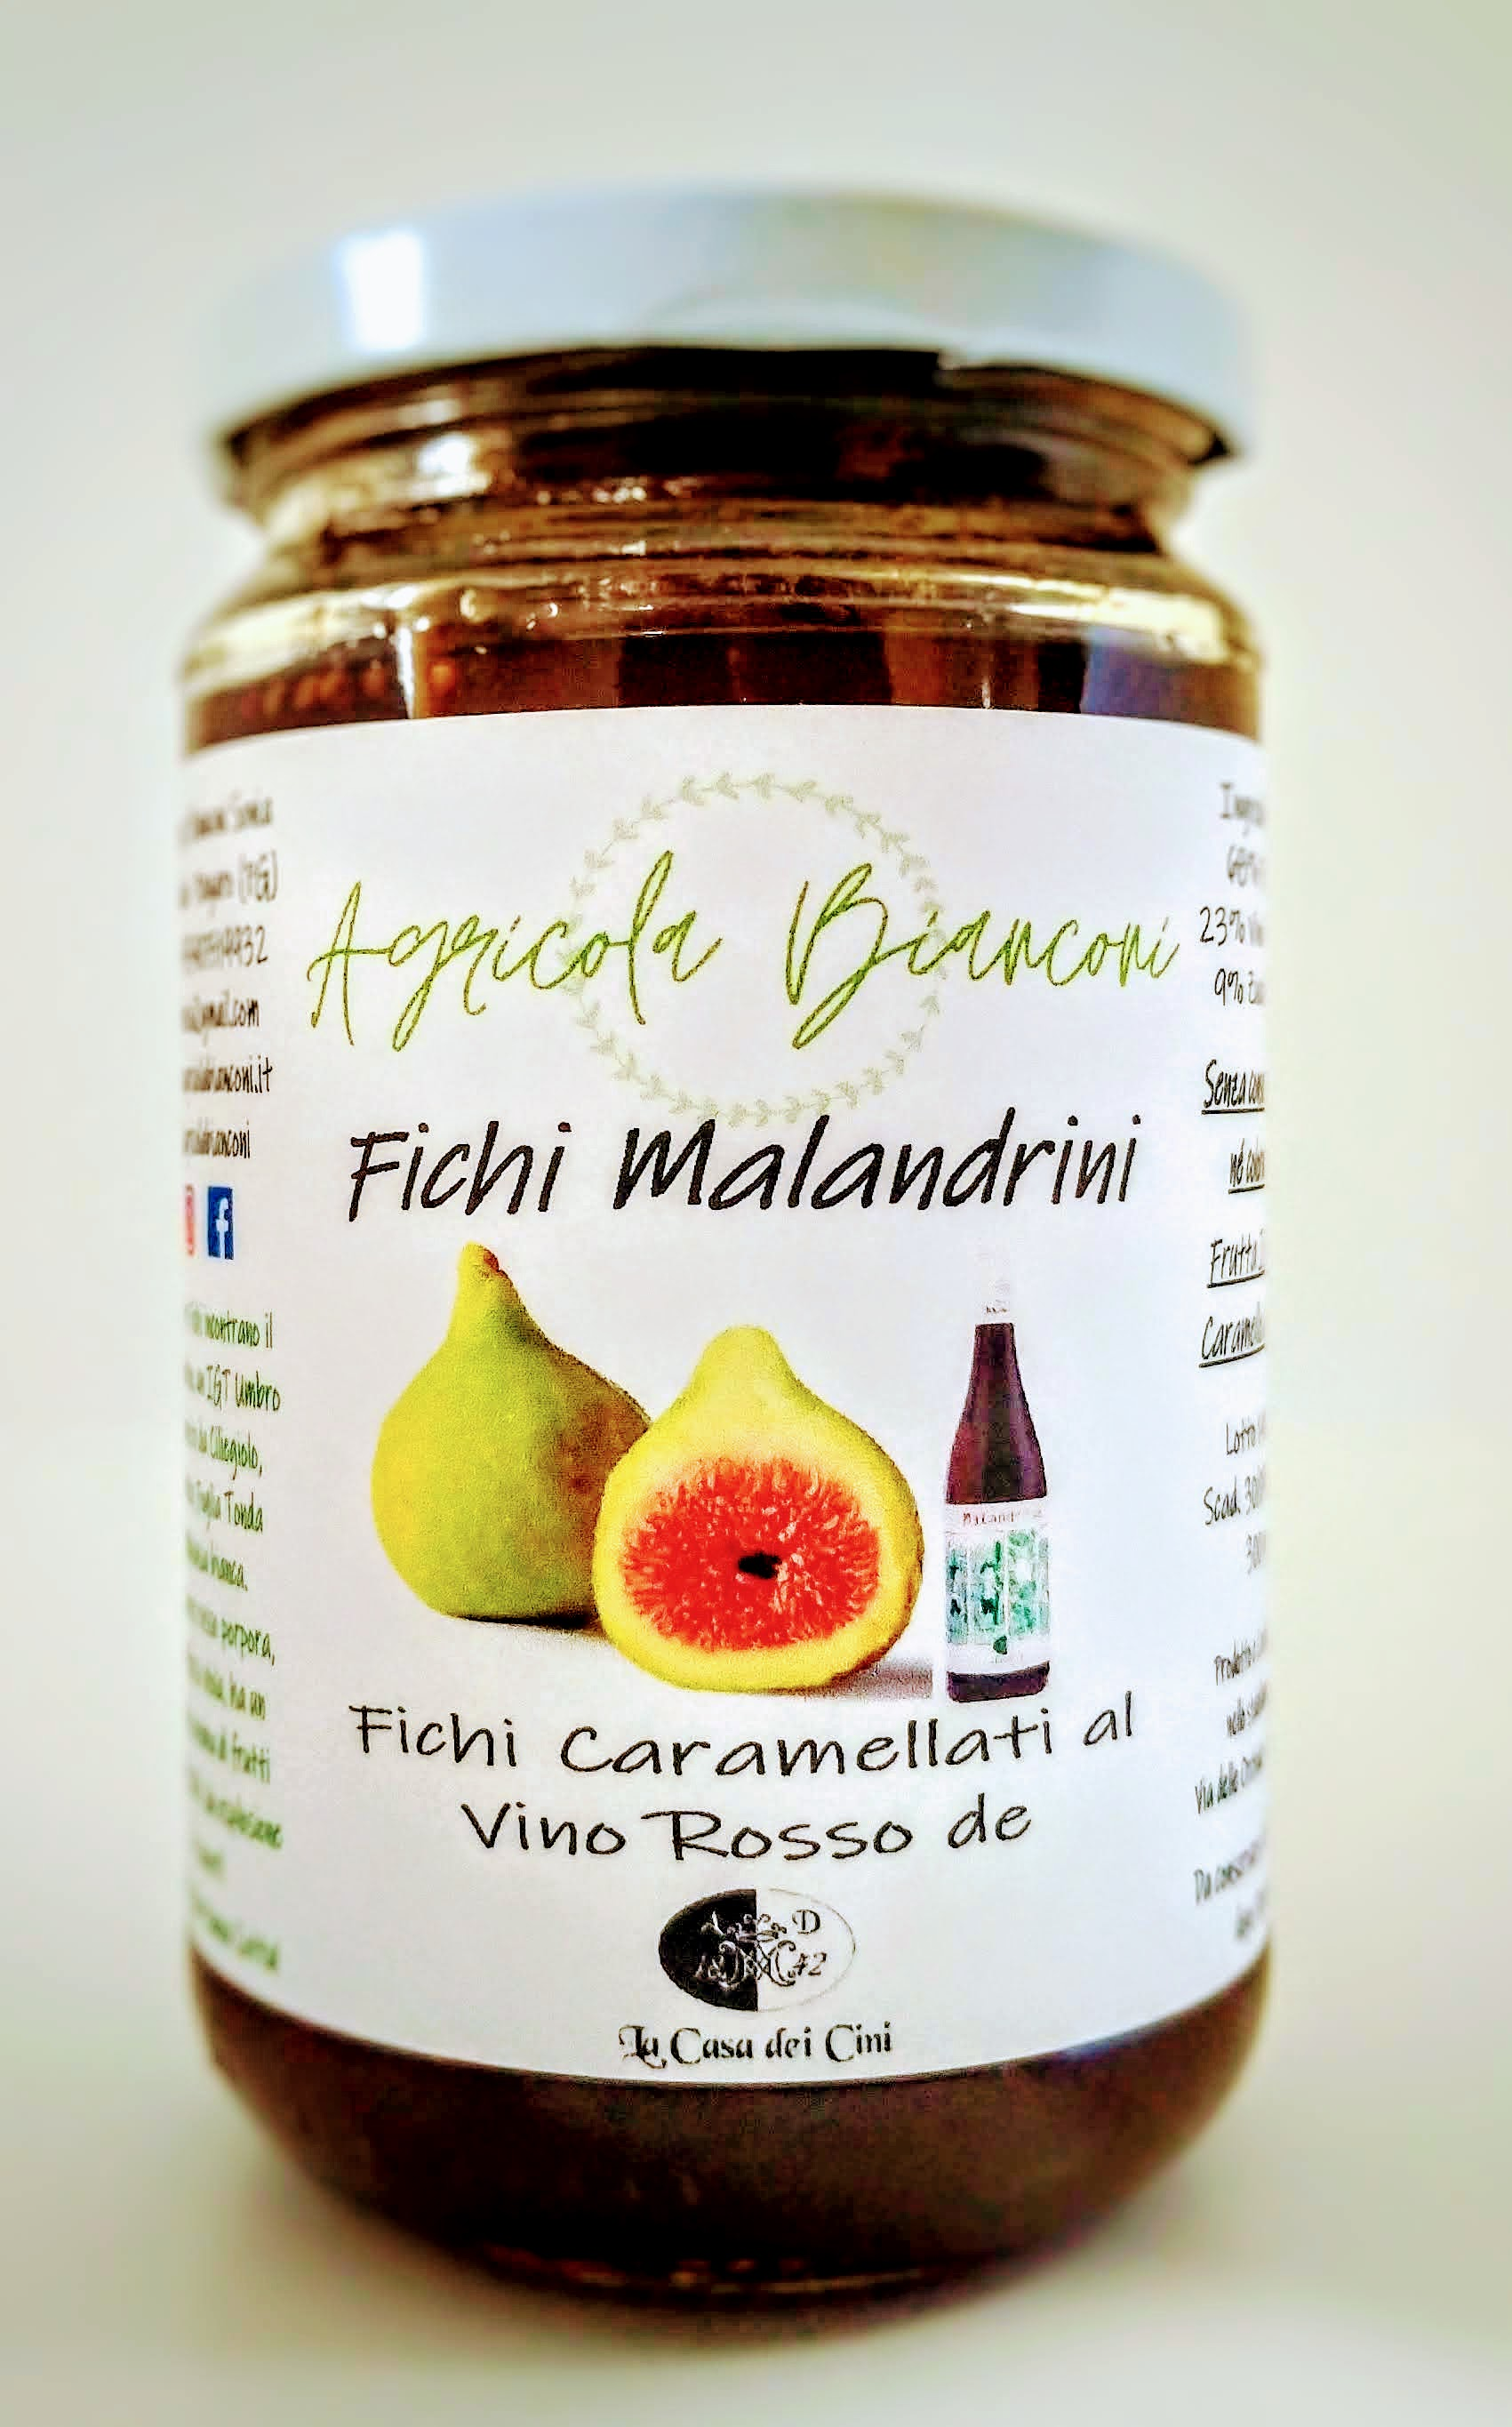 FICHI CARAMELLATI AL VINO ROSSO 300 GR - CARAMELIZED FIGS IN RED WINE 300 GR